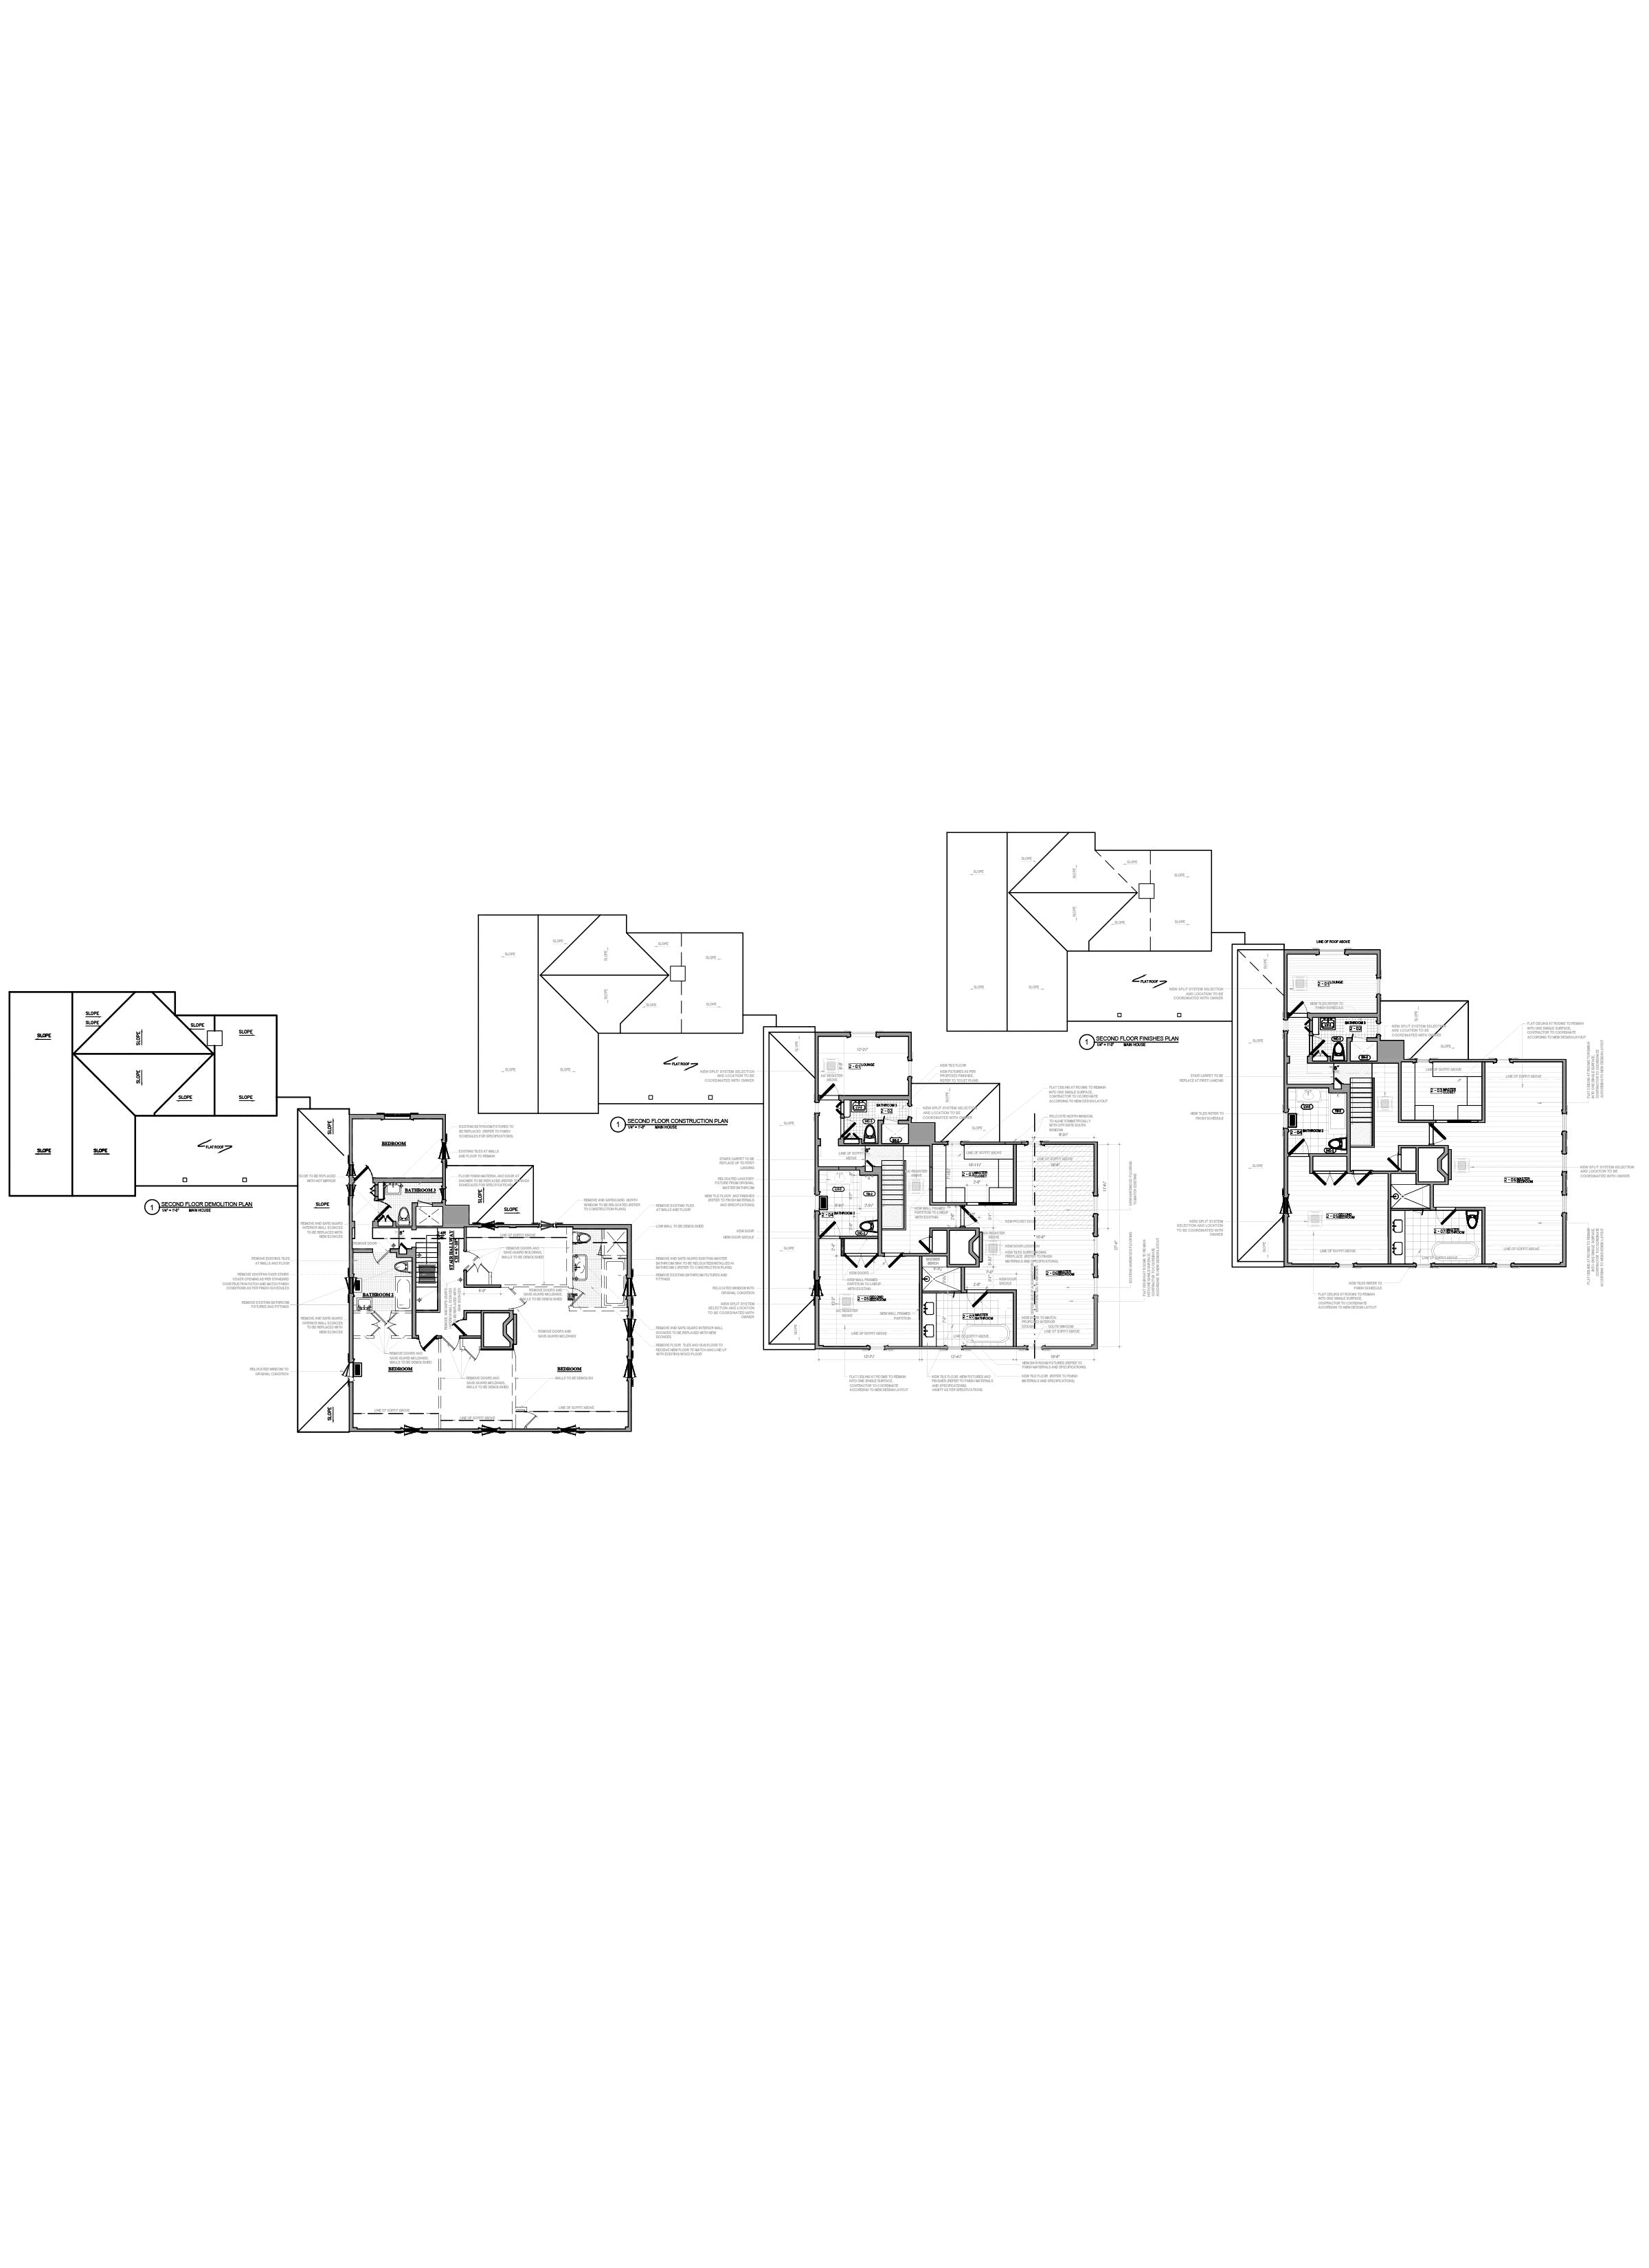 Floor plan design - As Built Drawings - AutoCAD drafting_HomeApartment_Brewster, NY